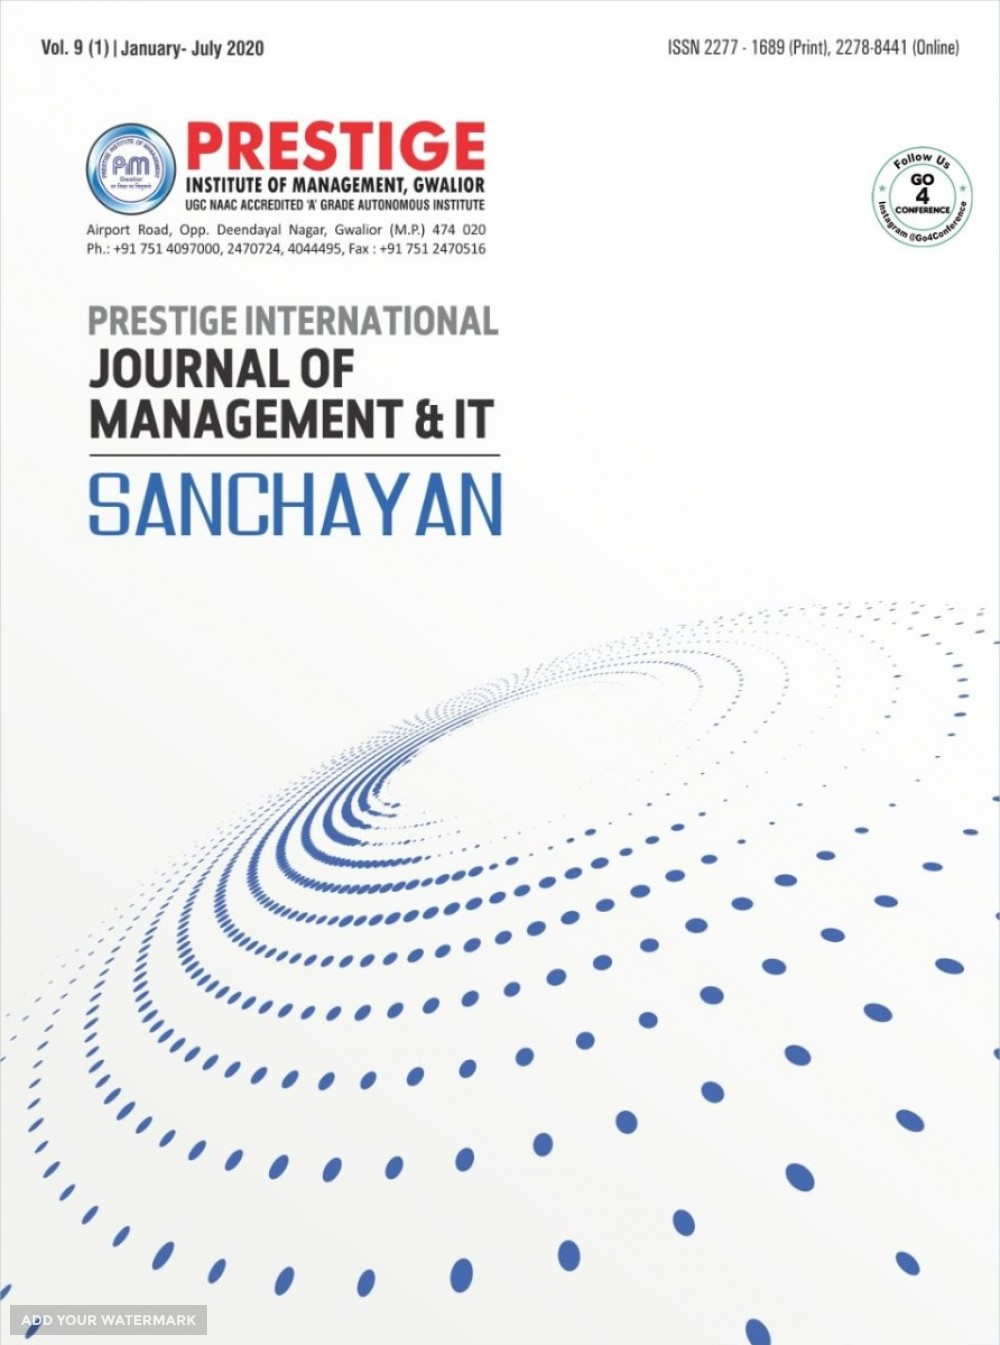 CALL FOR PAPERS Prestige International Journal of Management & IT- Sanchayan